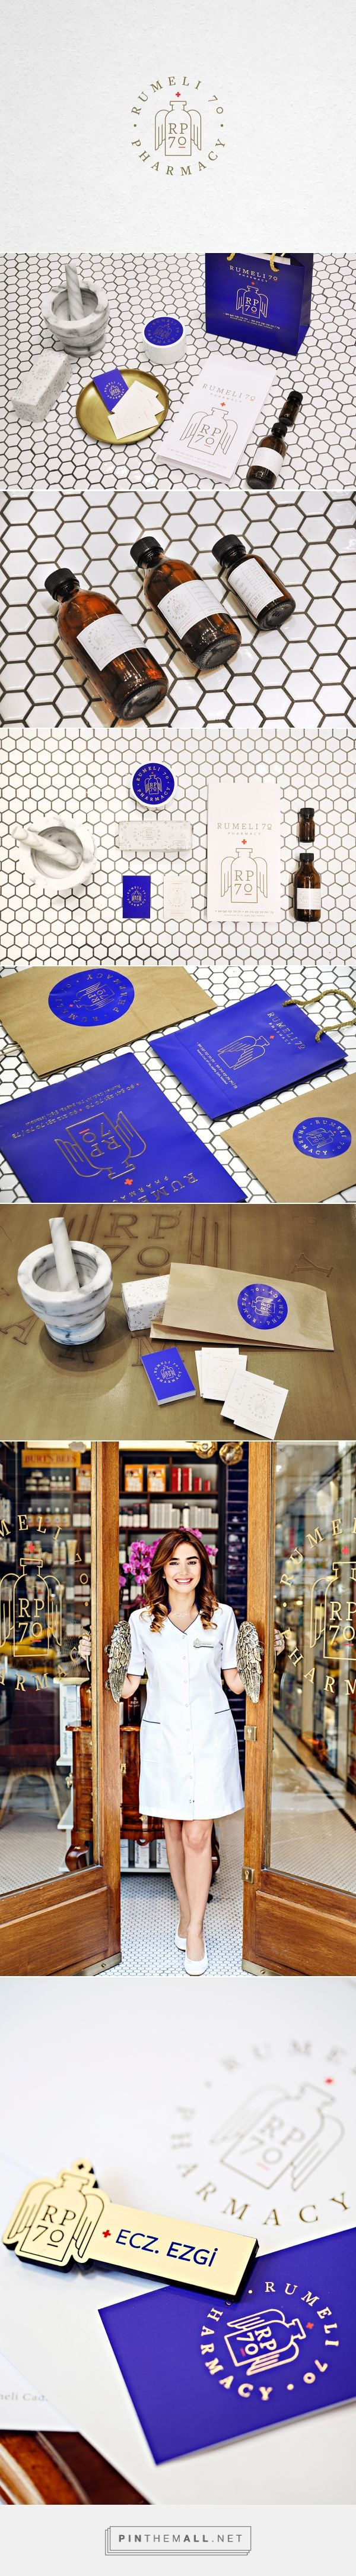 Rumeli70 Pharmacy identity packaging branding on Behance by Ipek Eris curated by Packaging Diva PD. Pharmacy branding and collateral for a newly opened pharmacy in the city of Instanbul.